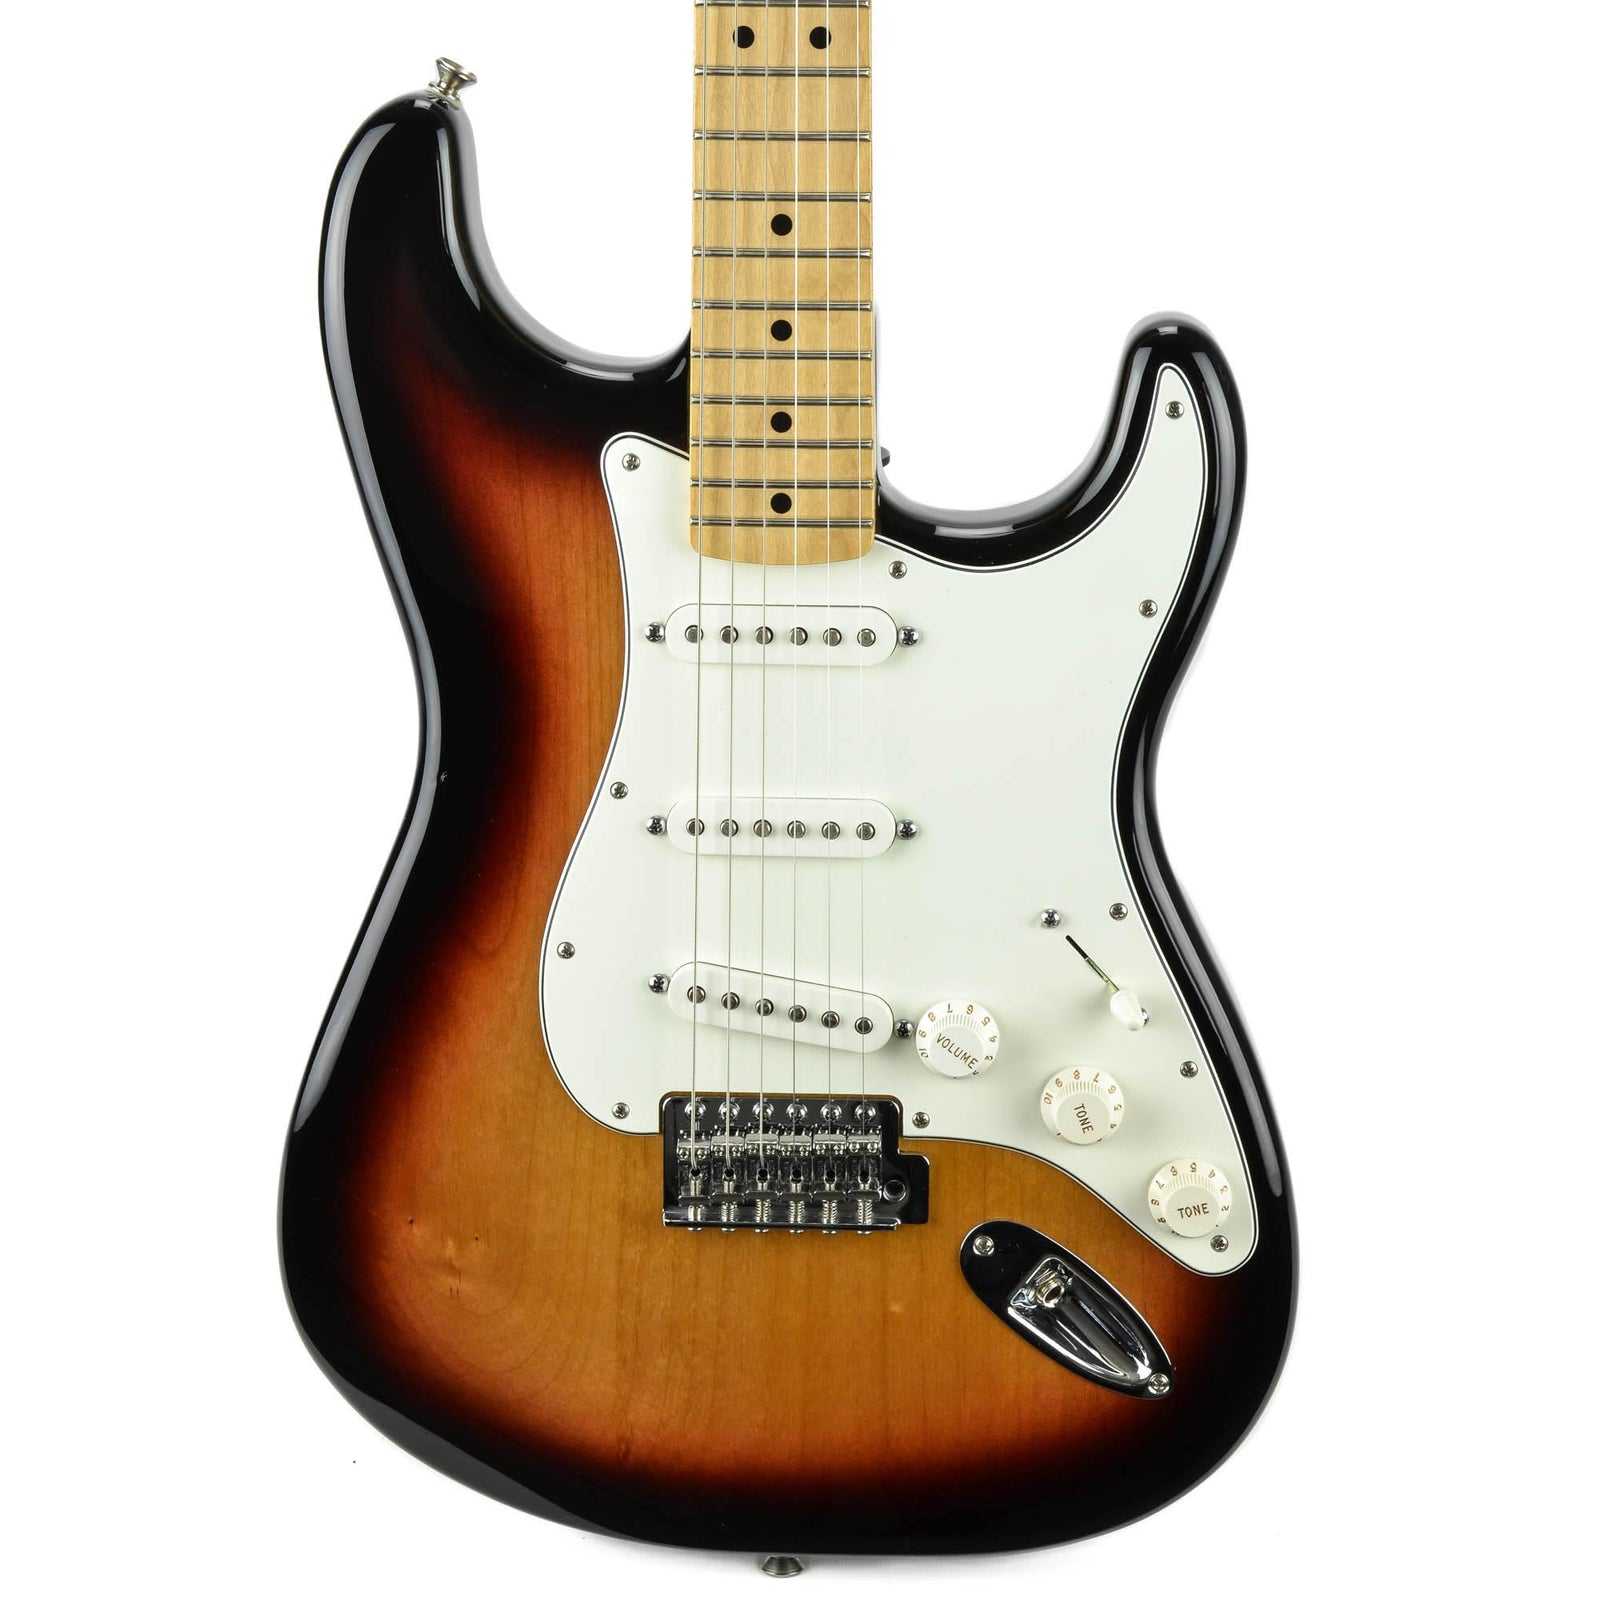 Fender Standard Stratocaster - Maple Fingerboard - Brown Sunburst - Used - Image: 1